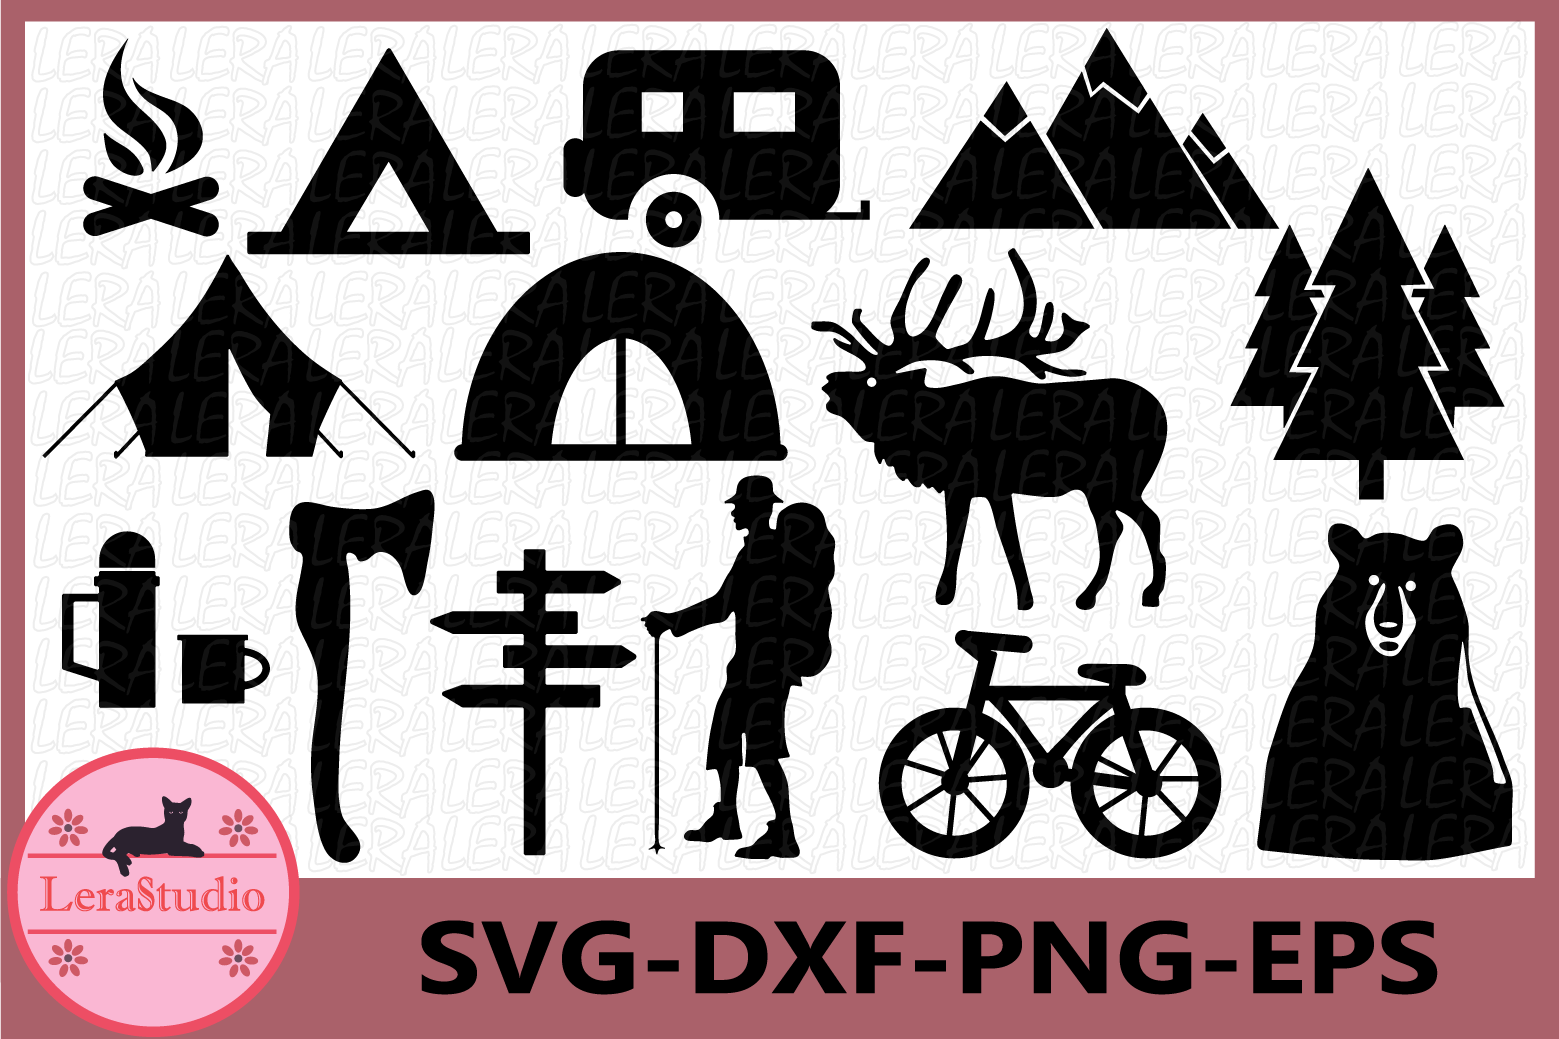 Camping SVG files, Camp svg, Forest Camping Svg, Campfire example image 1